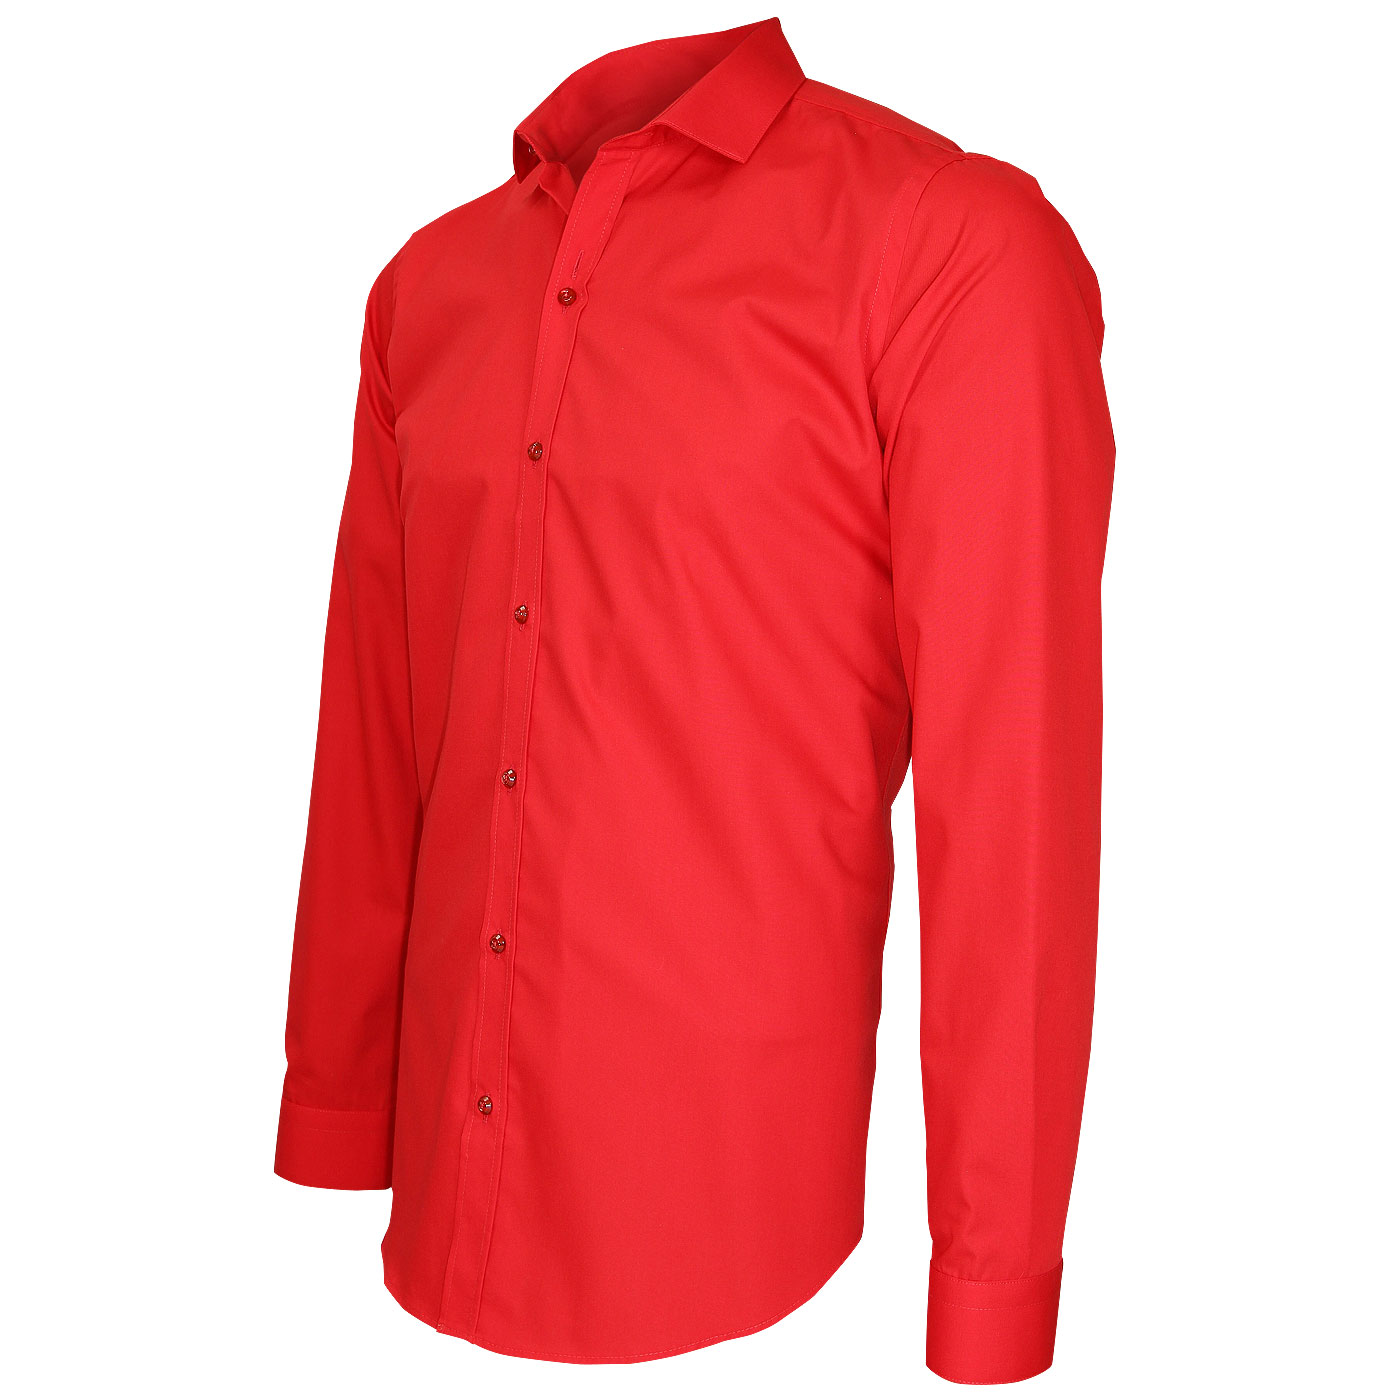 slim fit red shirt